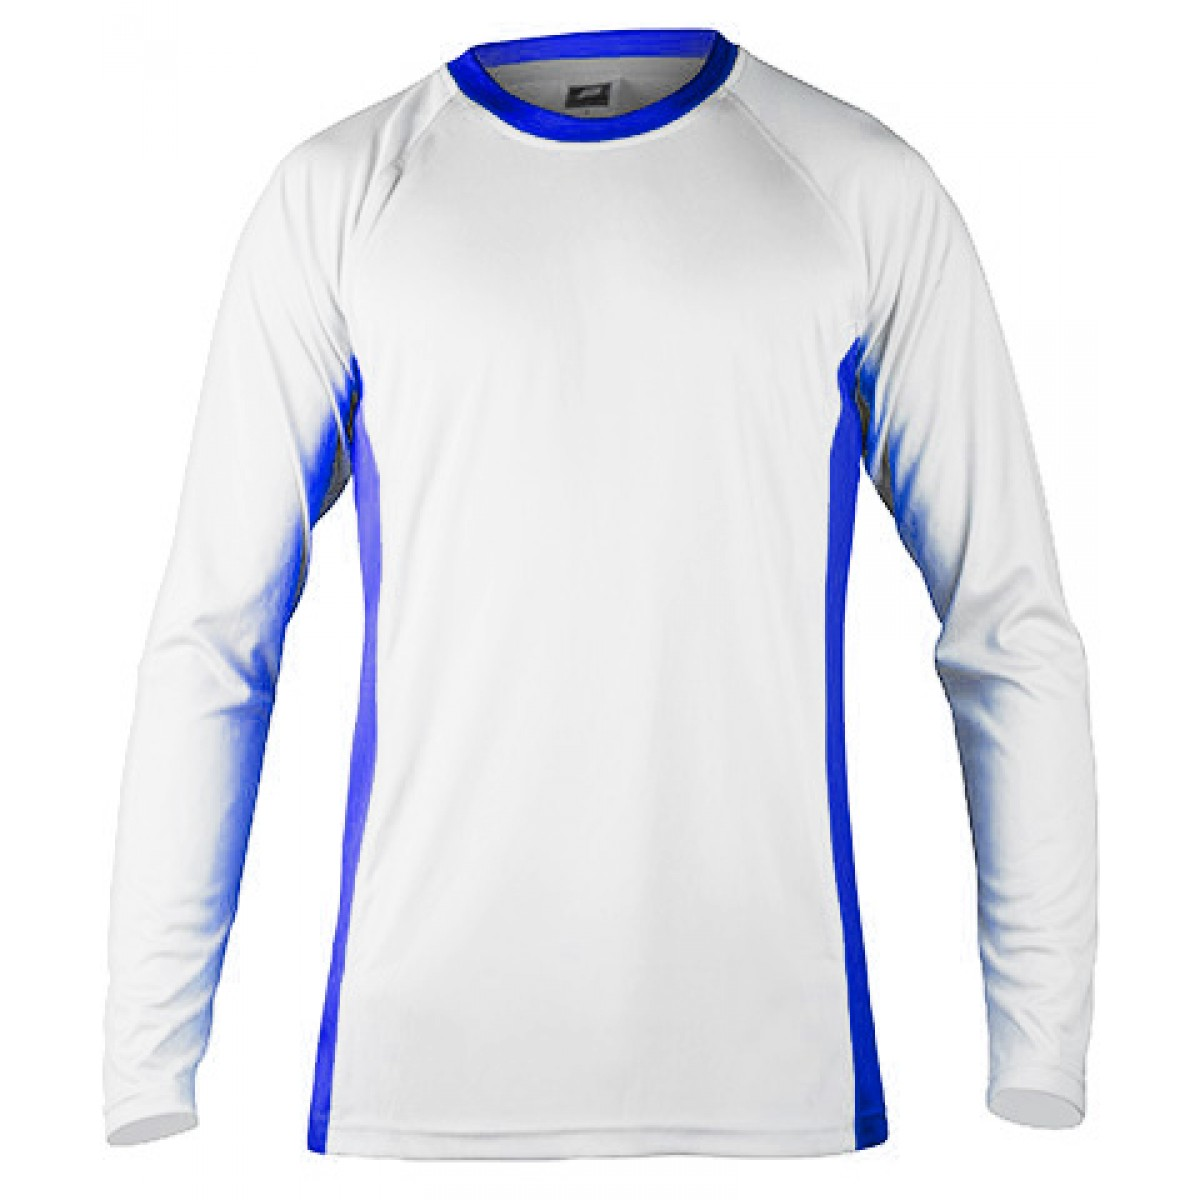 Long Sleeves Performance With Side Insert-White/Blue-S